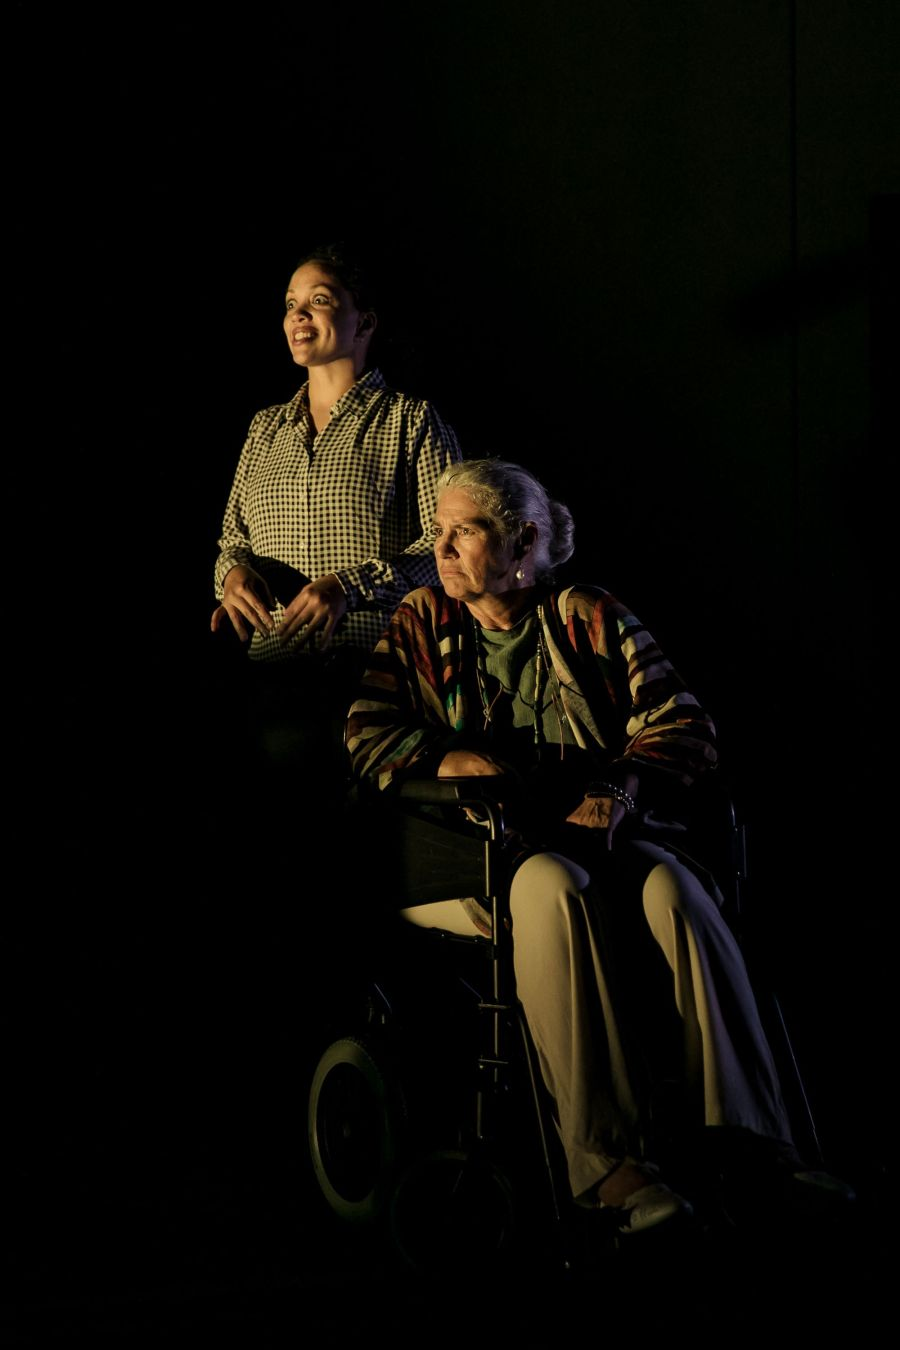 Cat Simmons (Jackie) & Denise Black (Pearl) in Mum by Morgan Lloyd Malcolm. Photo by The Other Richard.